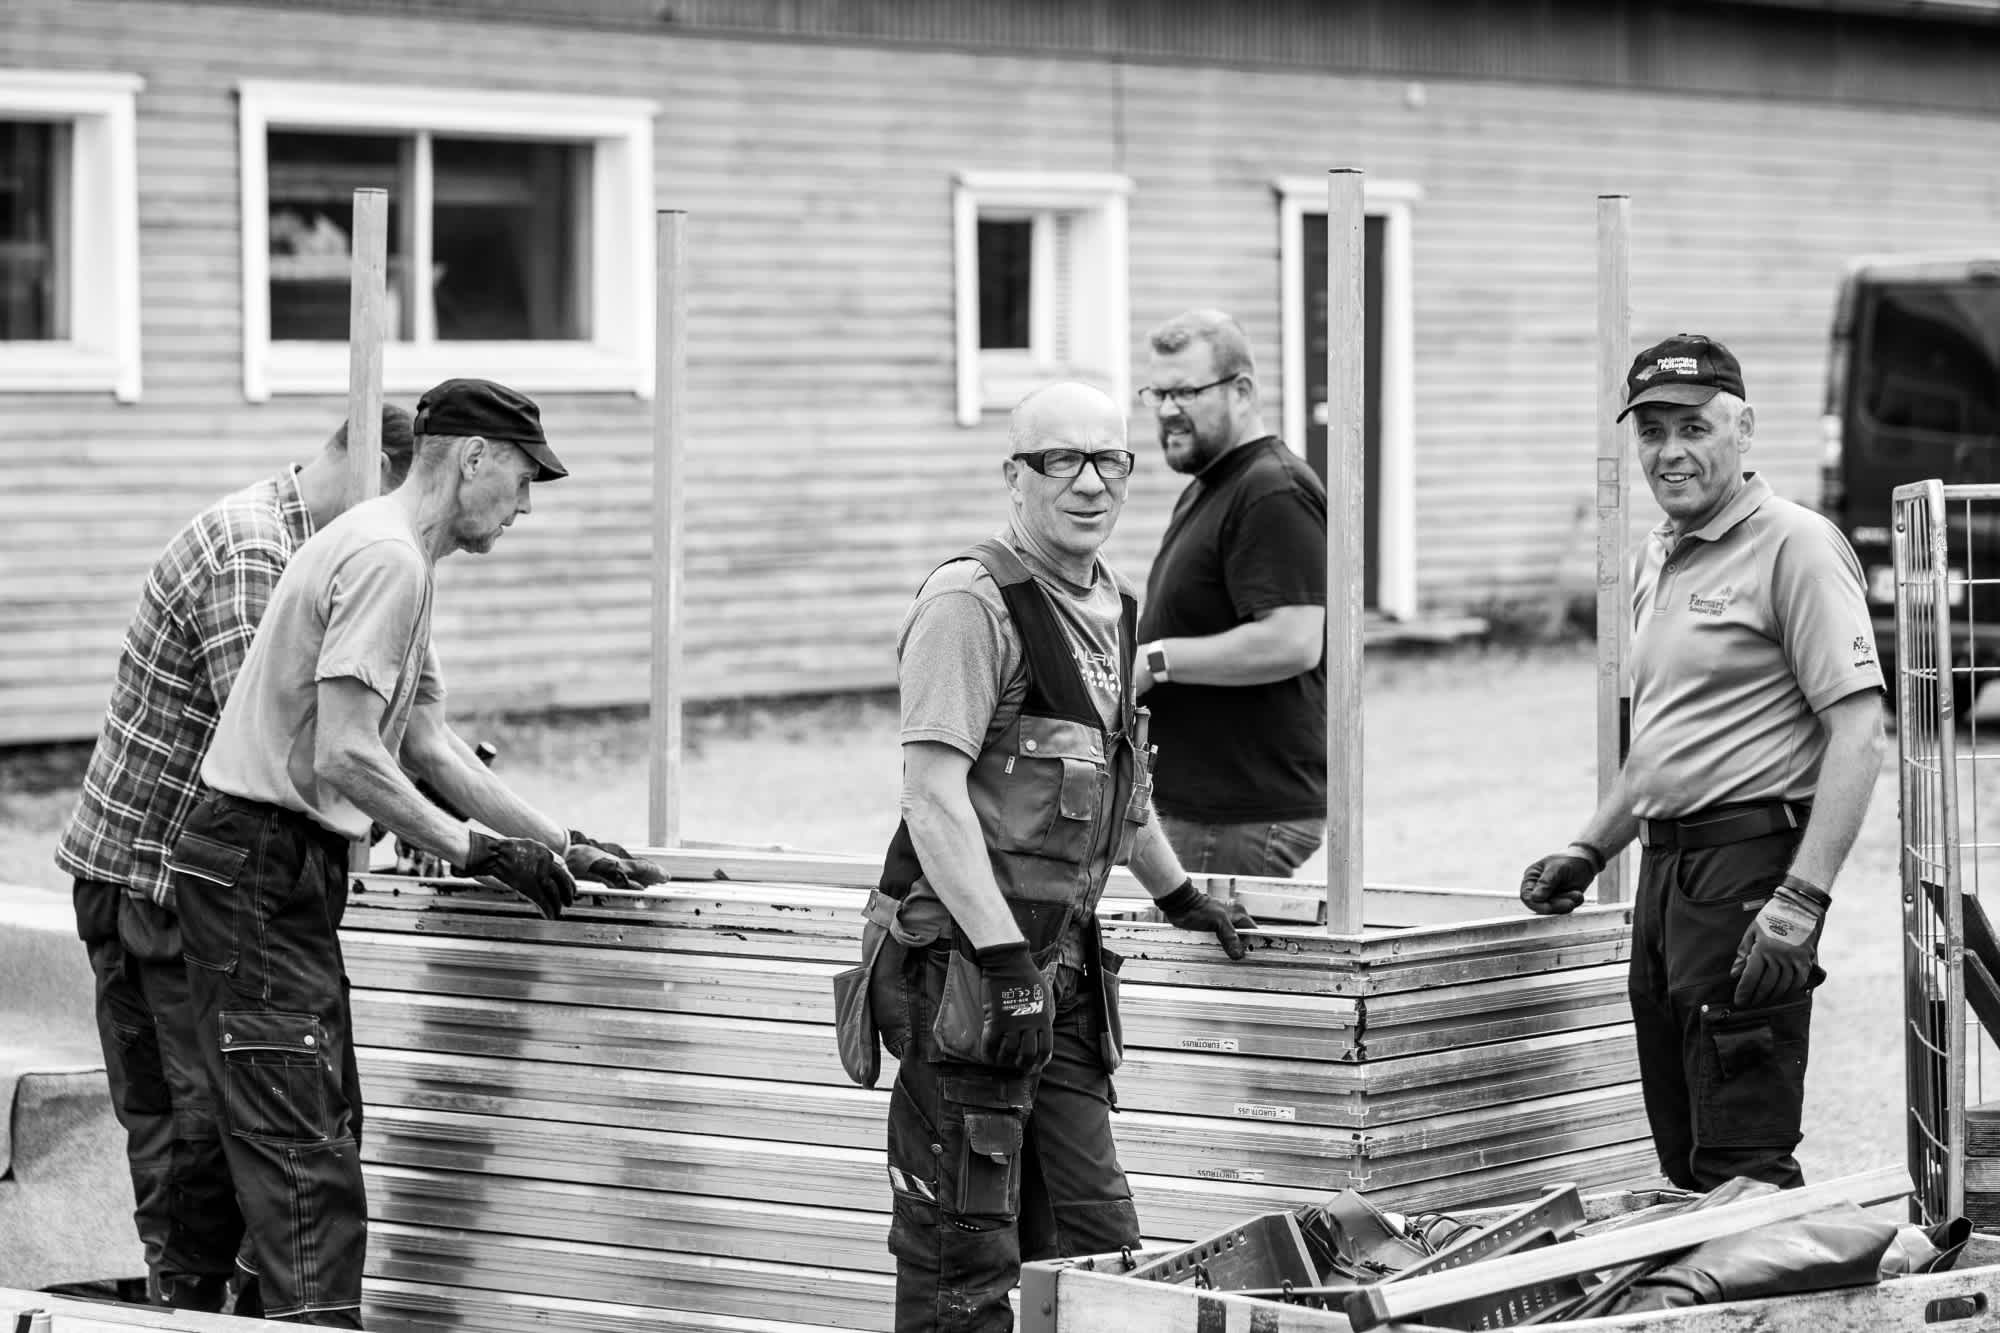 Black and white image of a group of construction workers building something.